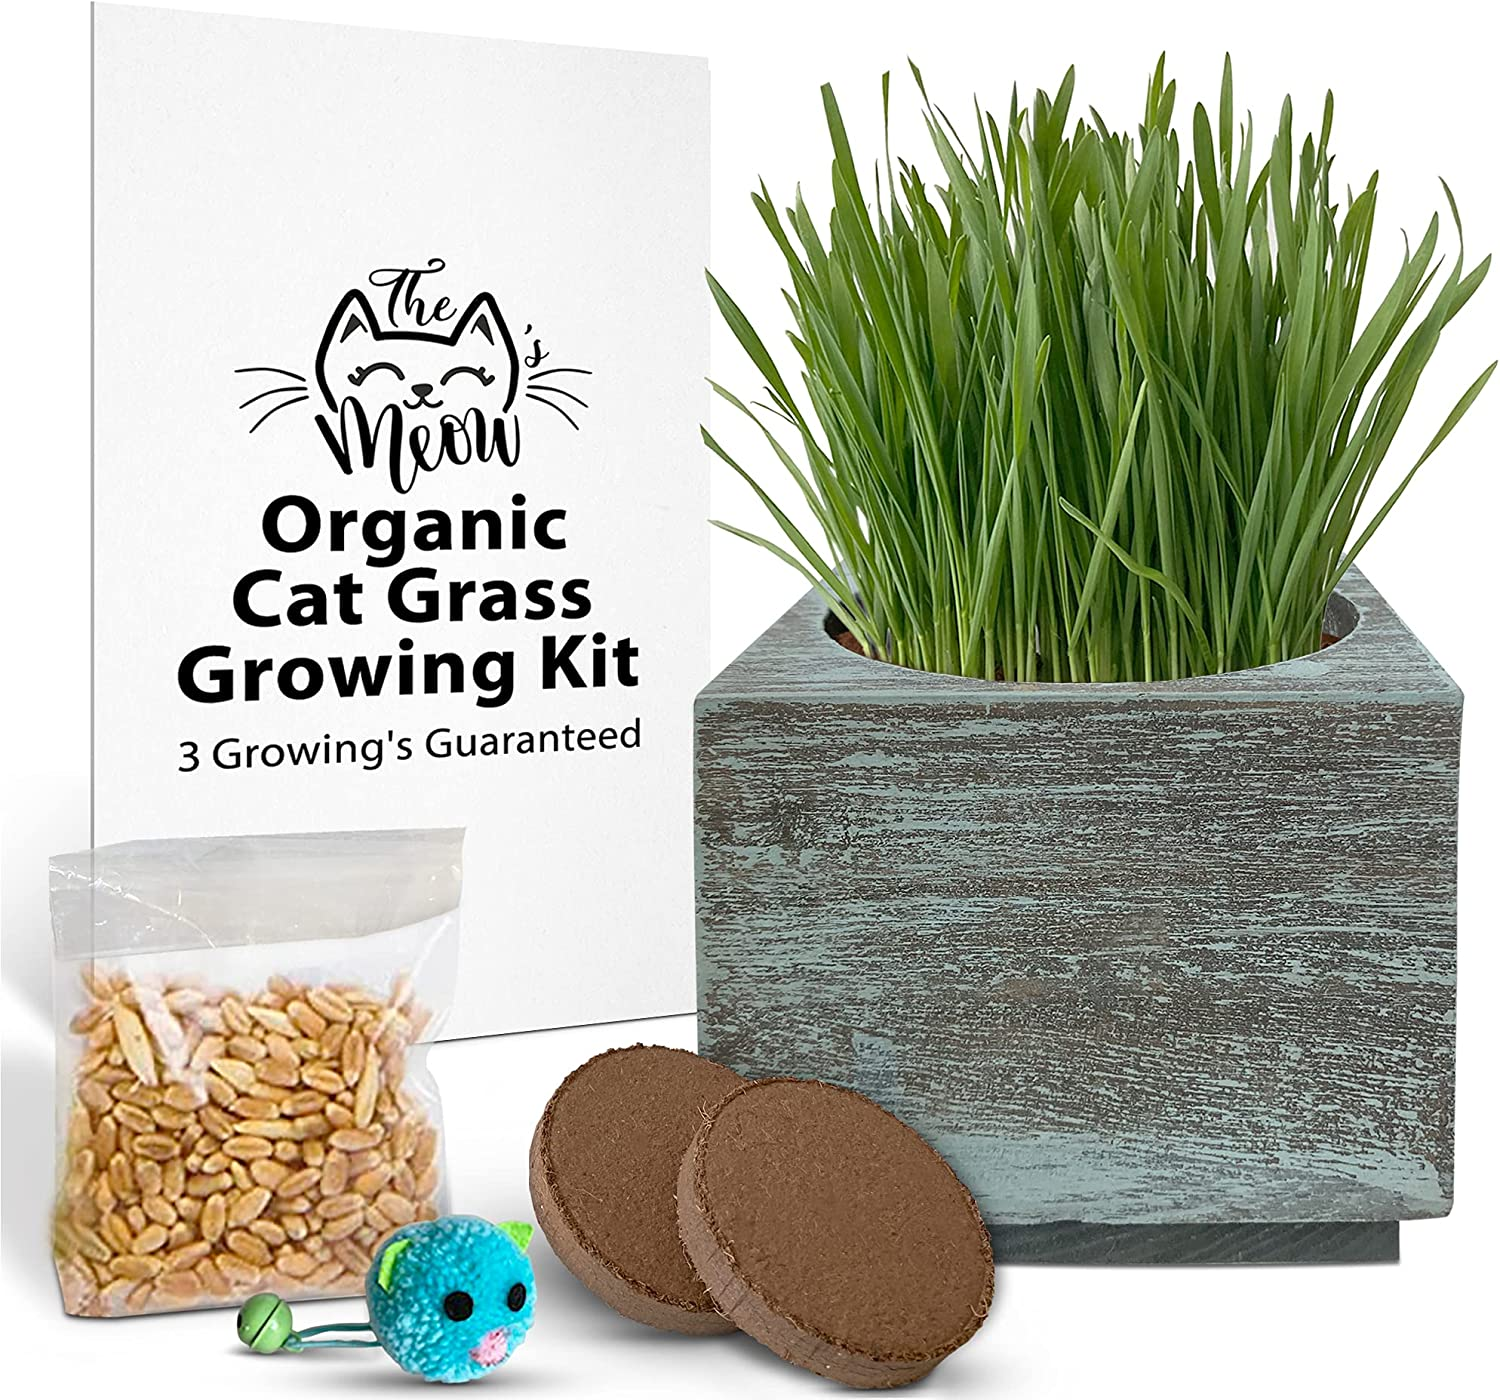 latest Organic Cat Grass Seeds Kit - Direct stock discount Seed for 3 Growing' Soil